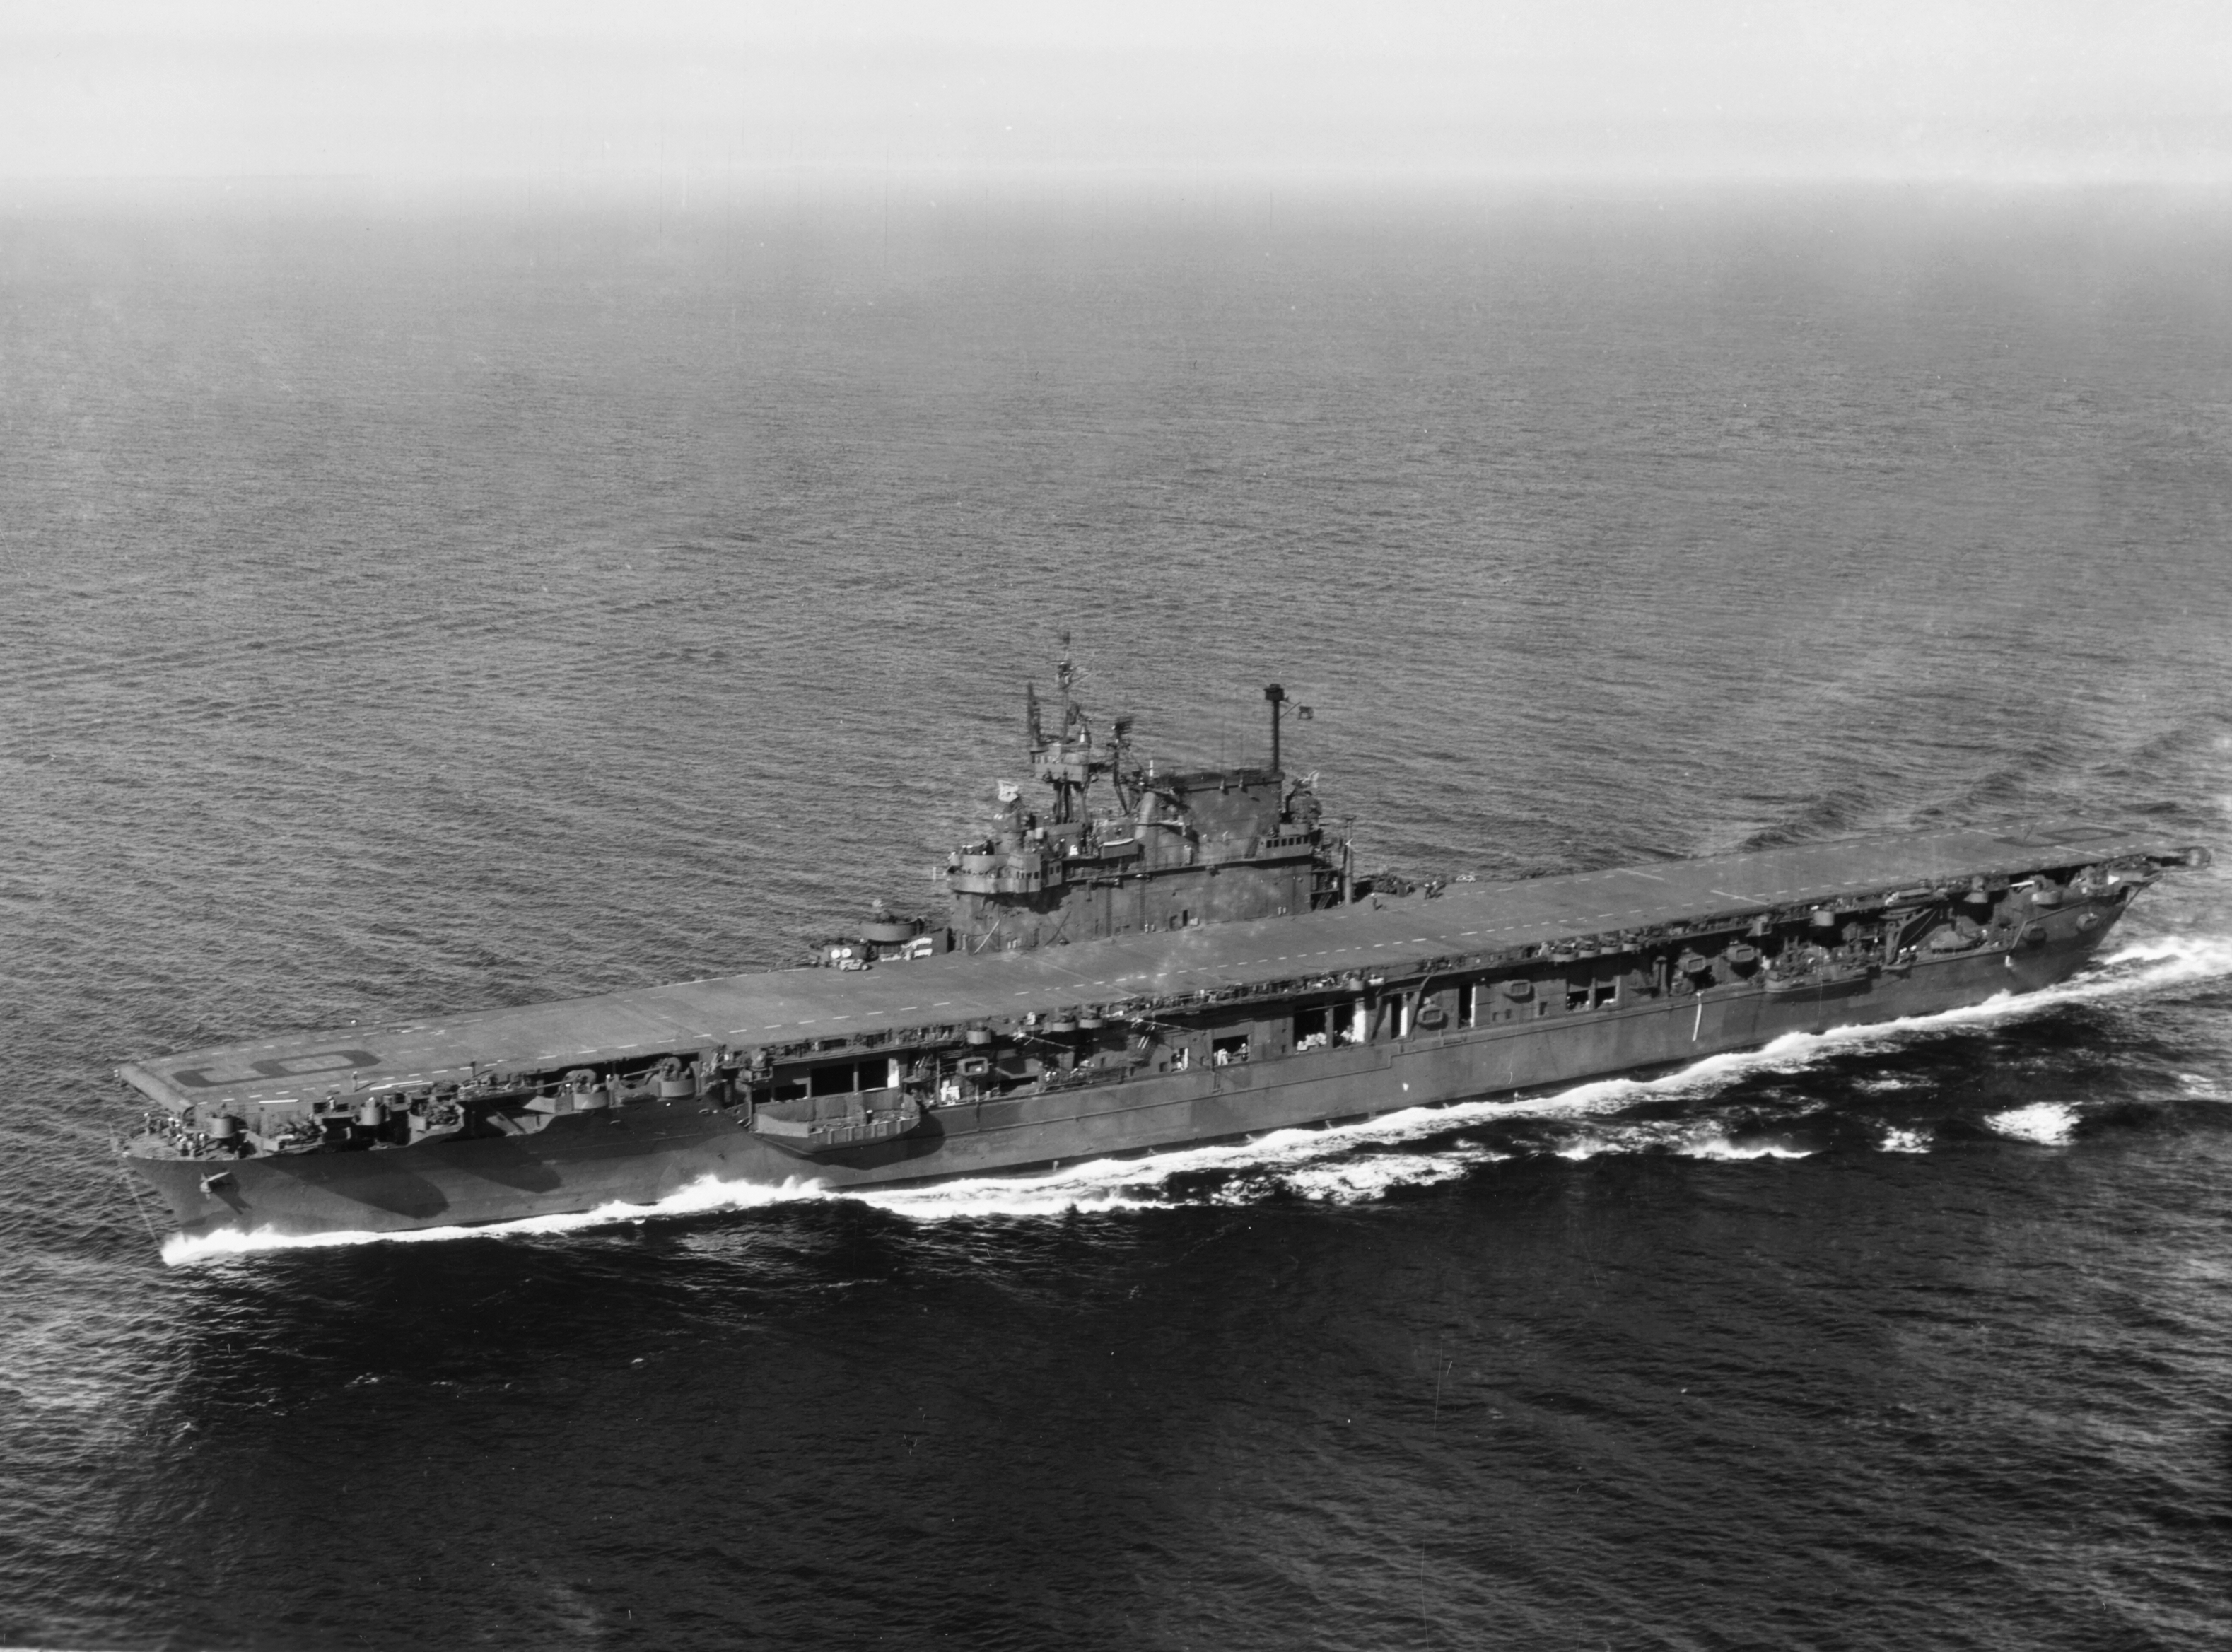 USS_Enterprise_%28CV-6%29_in_Puget_Sound%2C_September_1945.jpg